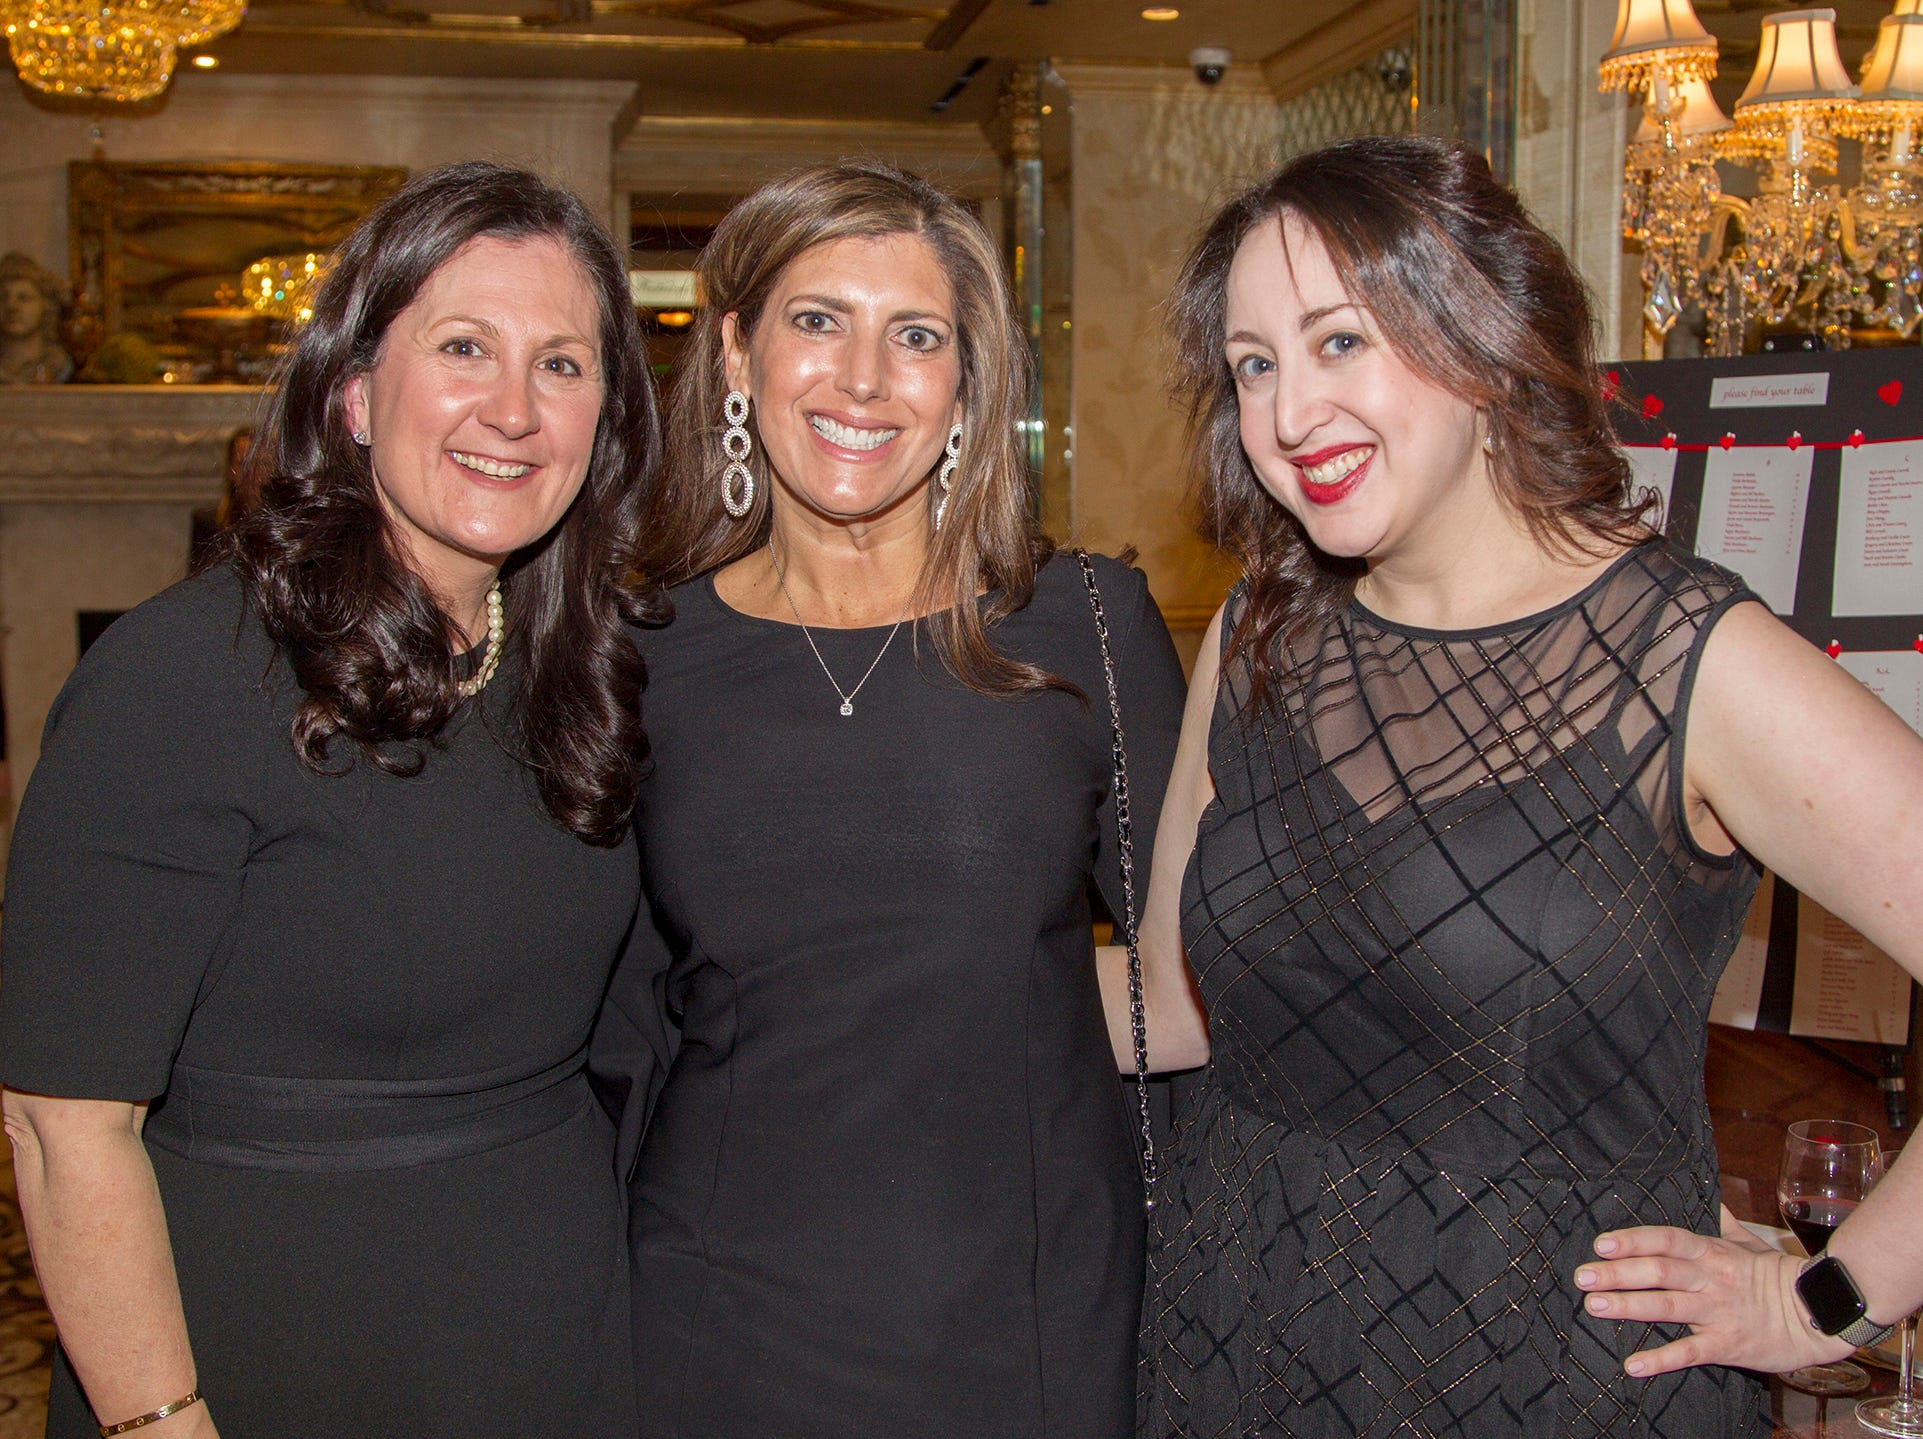 Christine Favaro, Lori Abbate, Kate Fisher. Institute for Educational Achievement (IEA) held its annual Dinner Dance at Seasons in Washington Township. 02/02/2019